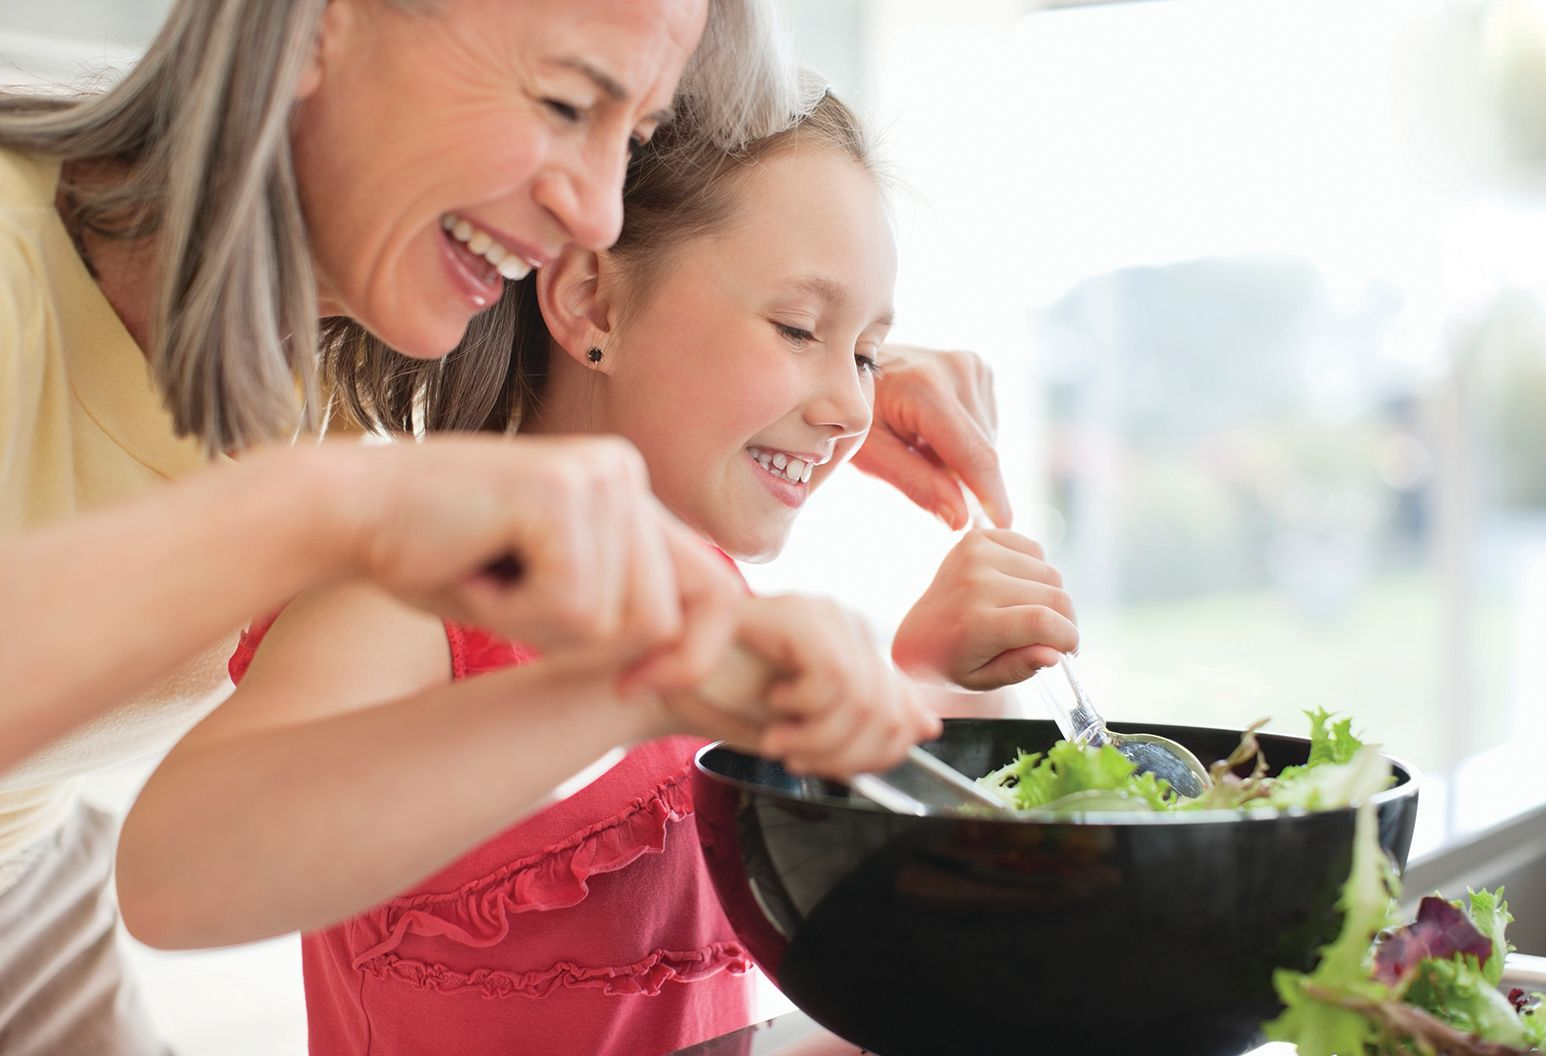 Grandmother and granddaughter preparing salad